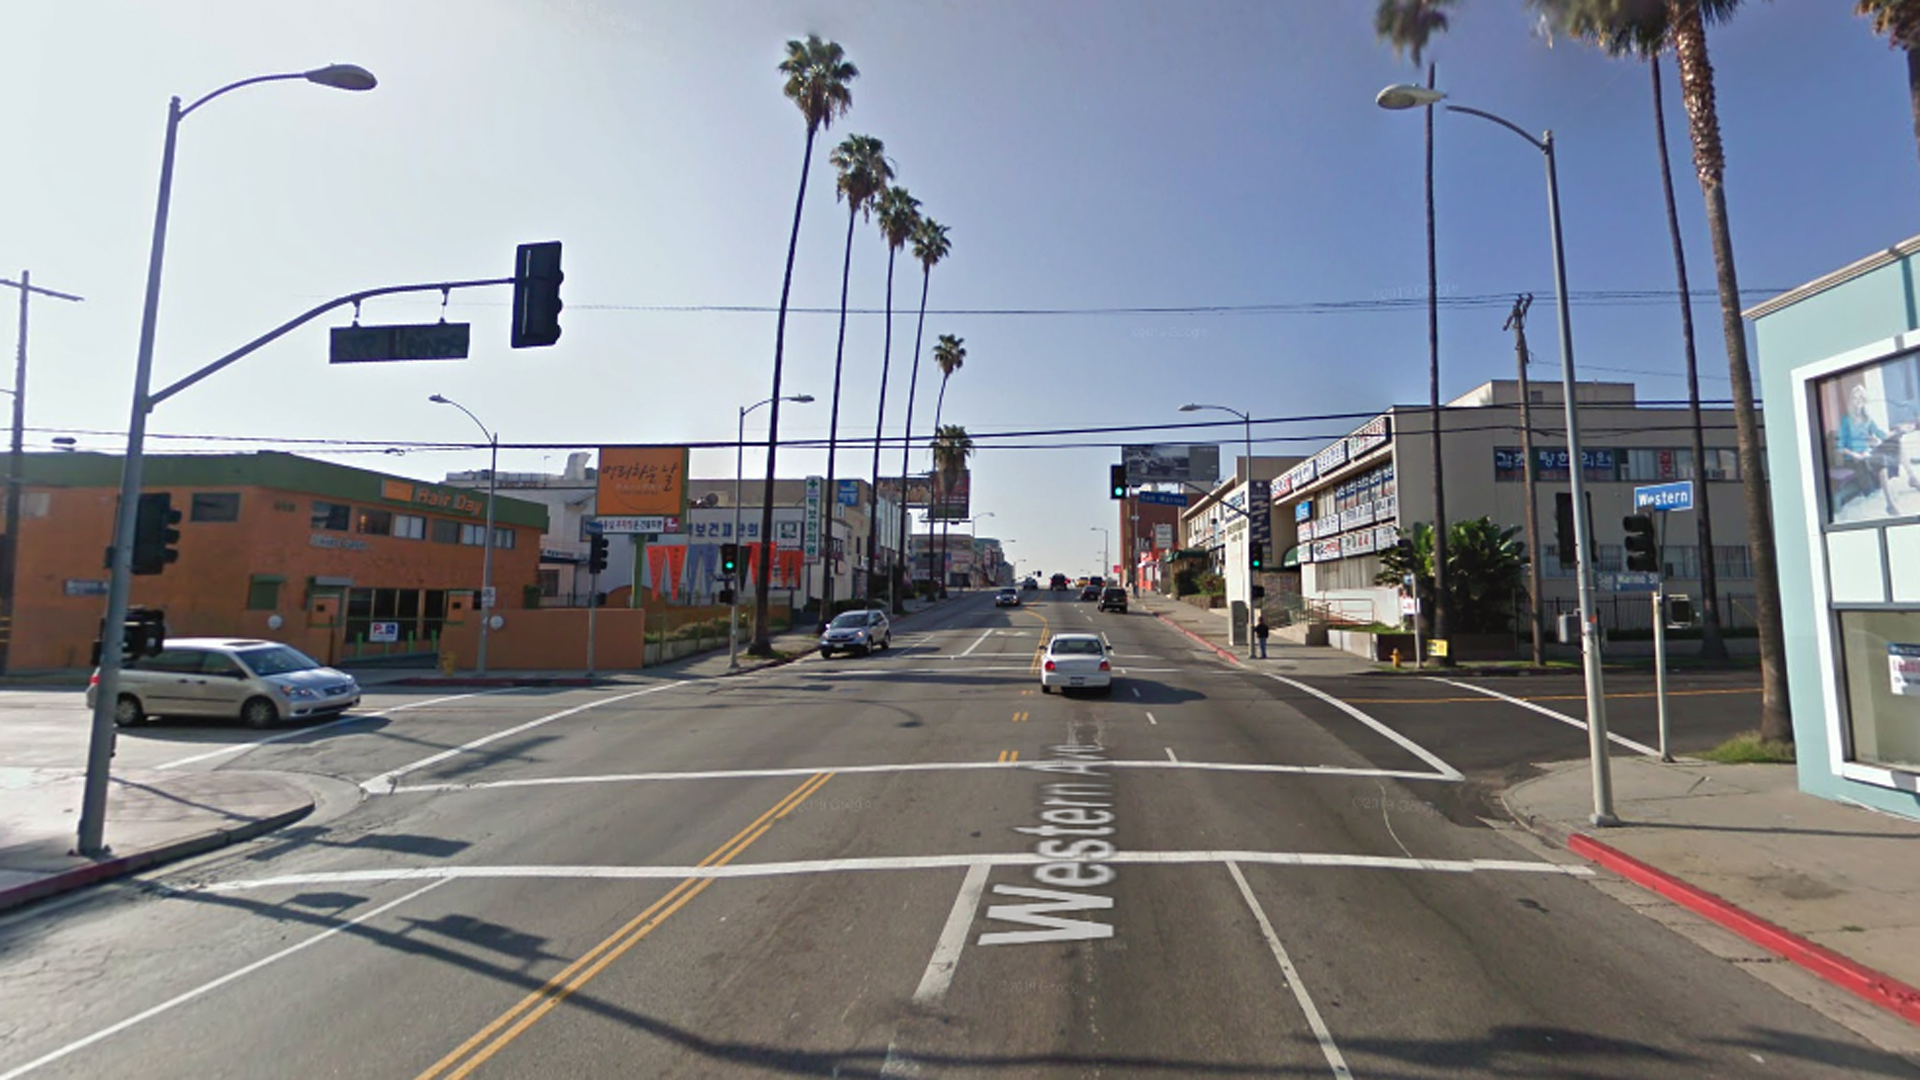 The intersection of Western Avenue and San Marino Street in the Koreatown area of Los Angeles, as viewed in a Google Street View image.